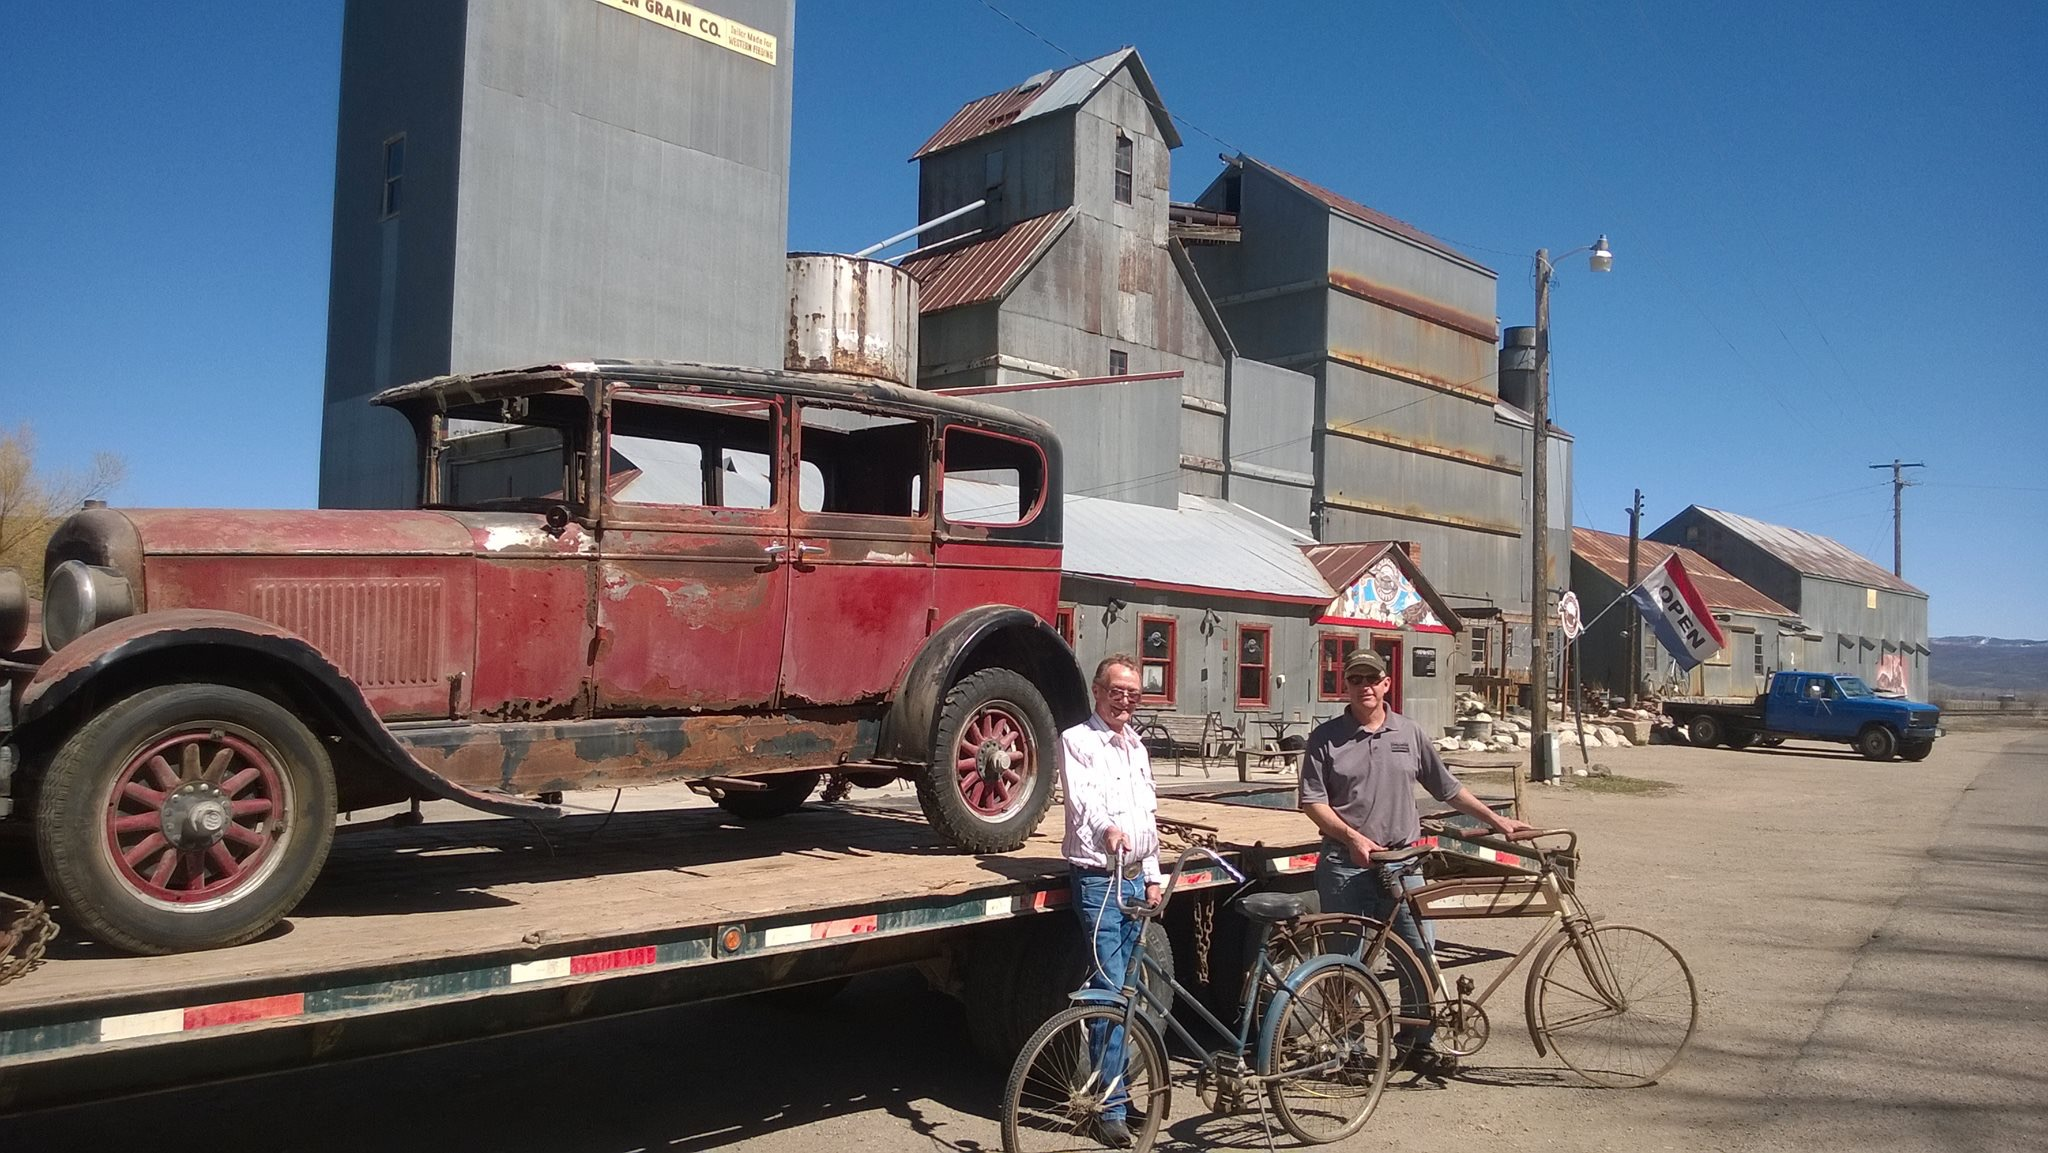 Vintage Car on trailer with two men holding vintage bikes in front of the Historic Hayden Granary.